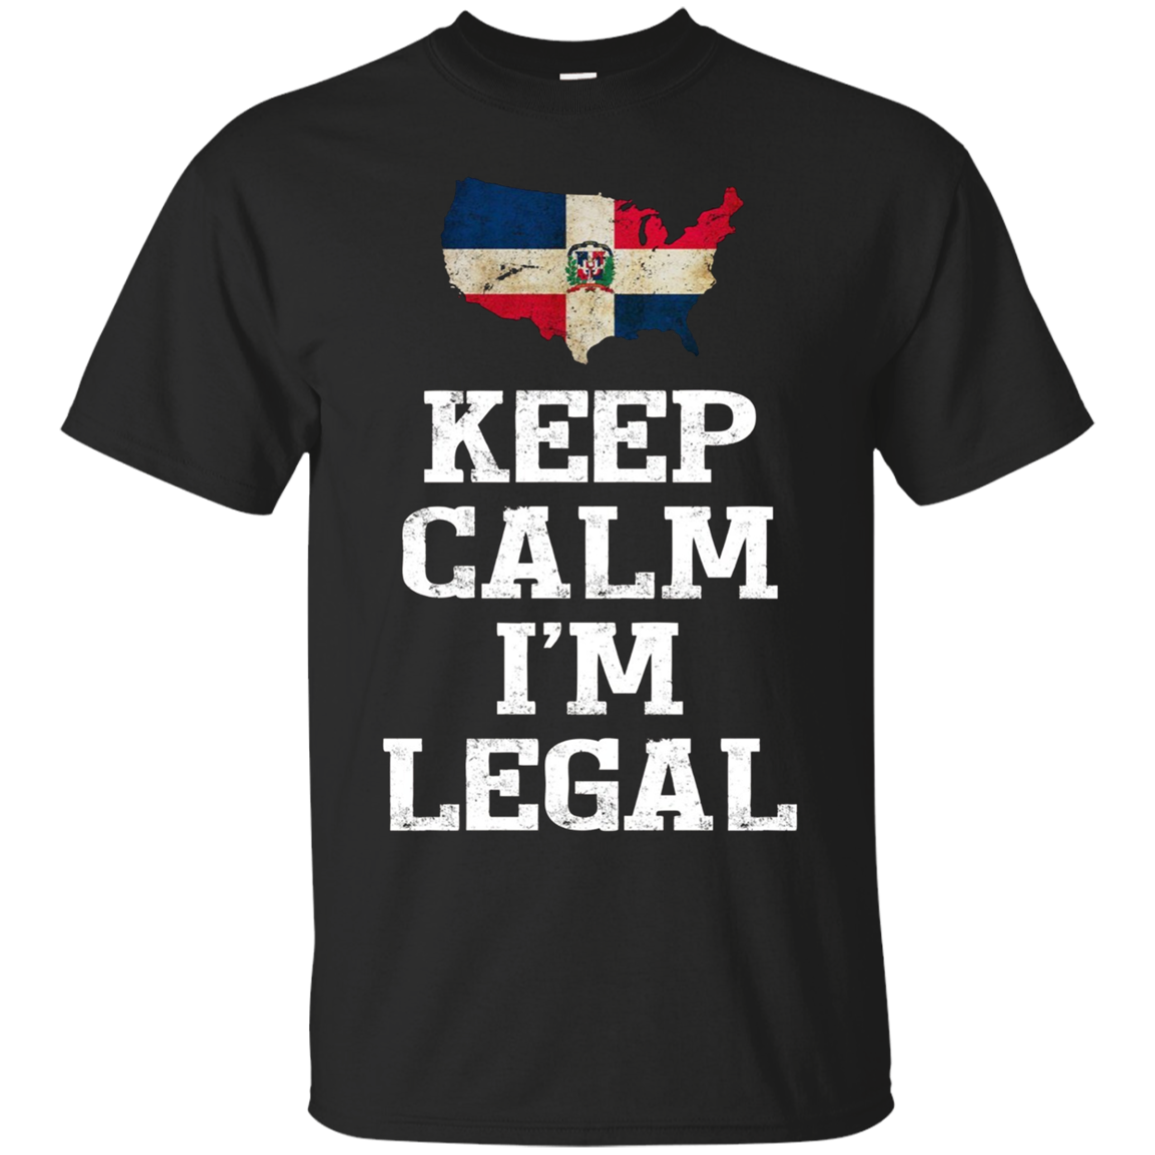 Keep Calm I'm Legal ~ Funny t-shirt Dominican Republic Flag